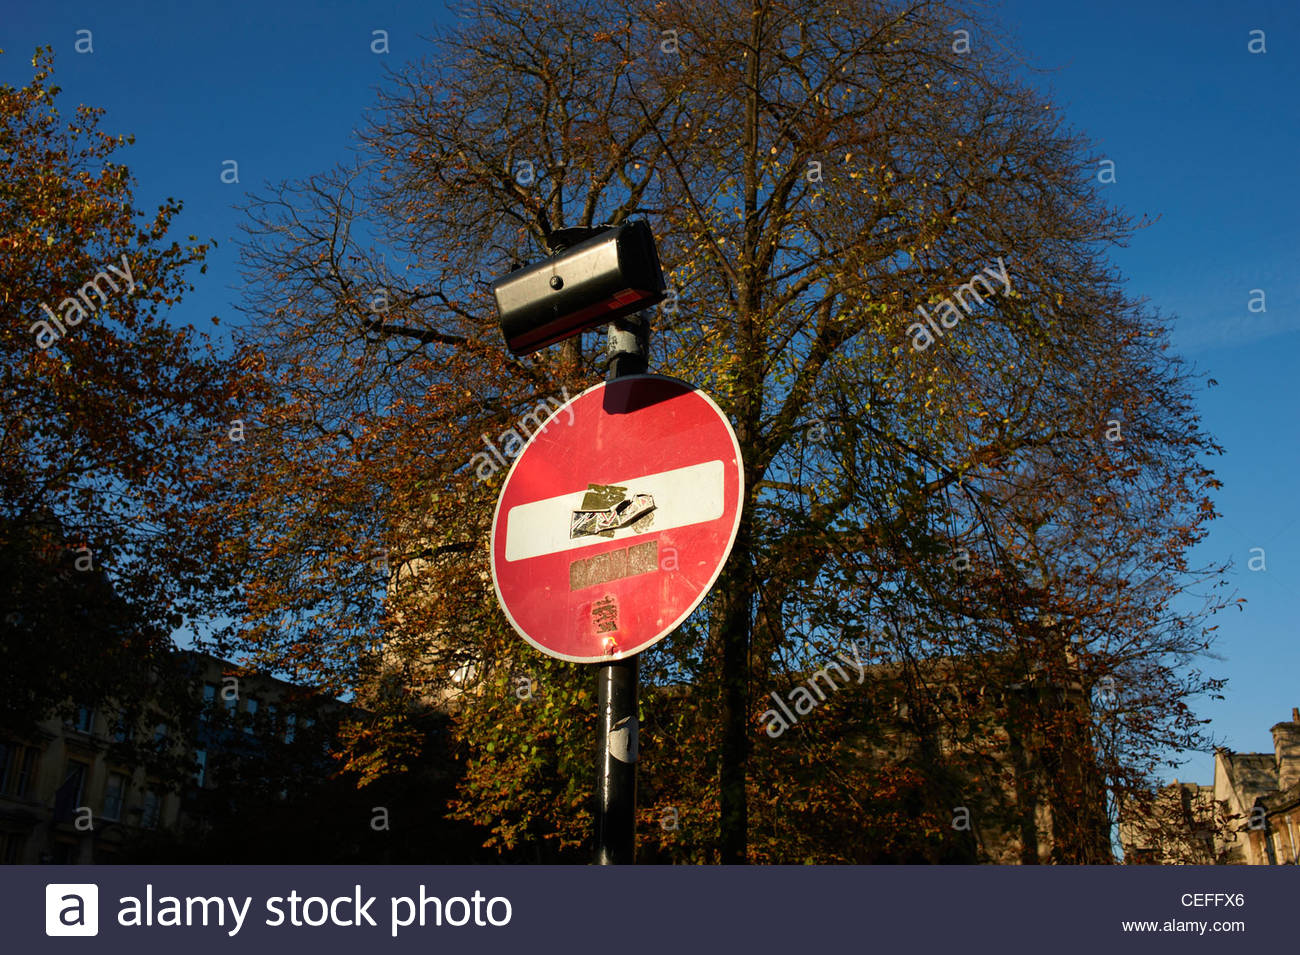 No Entry Sign in Oxford - Stock Image